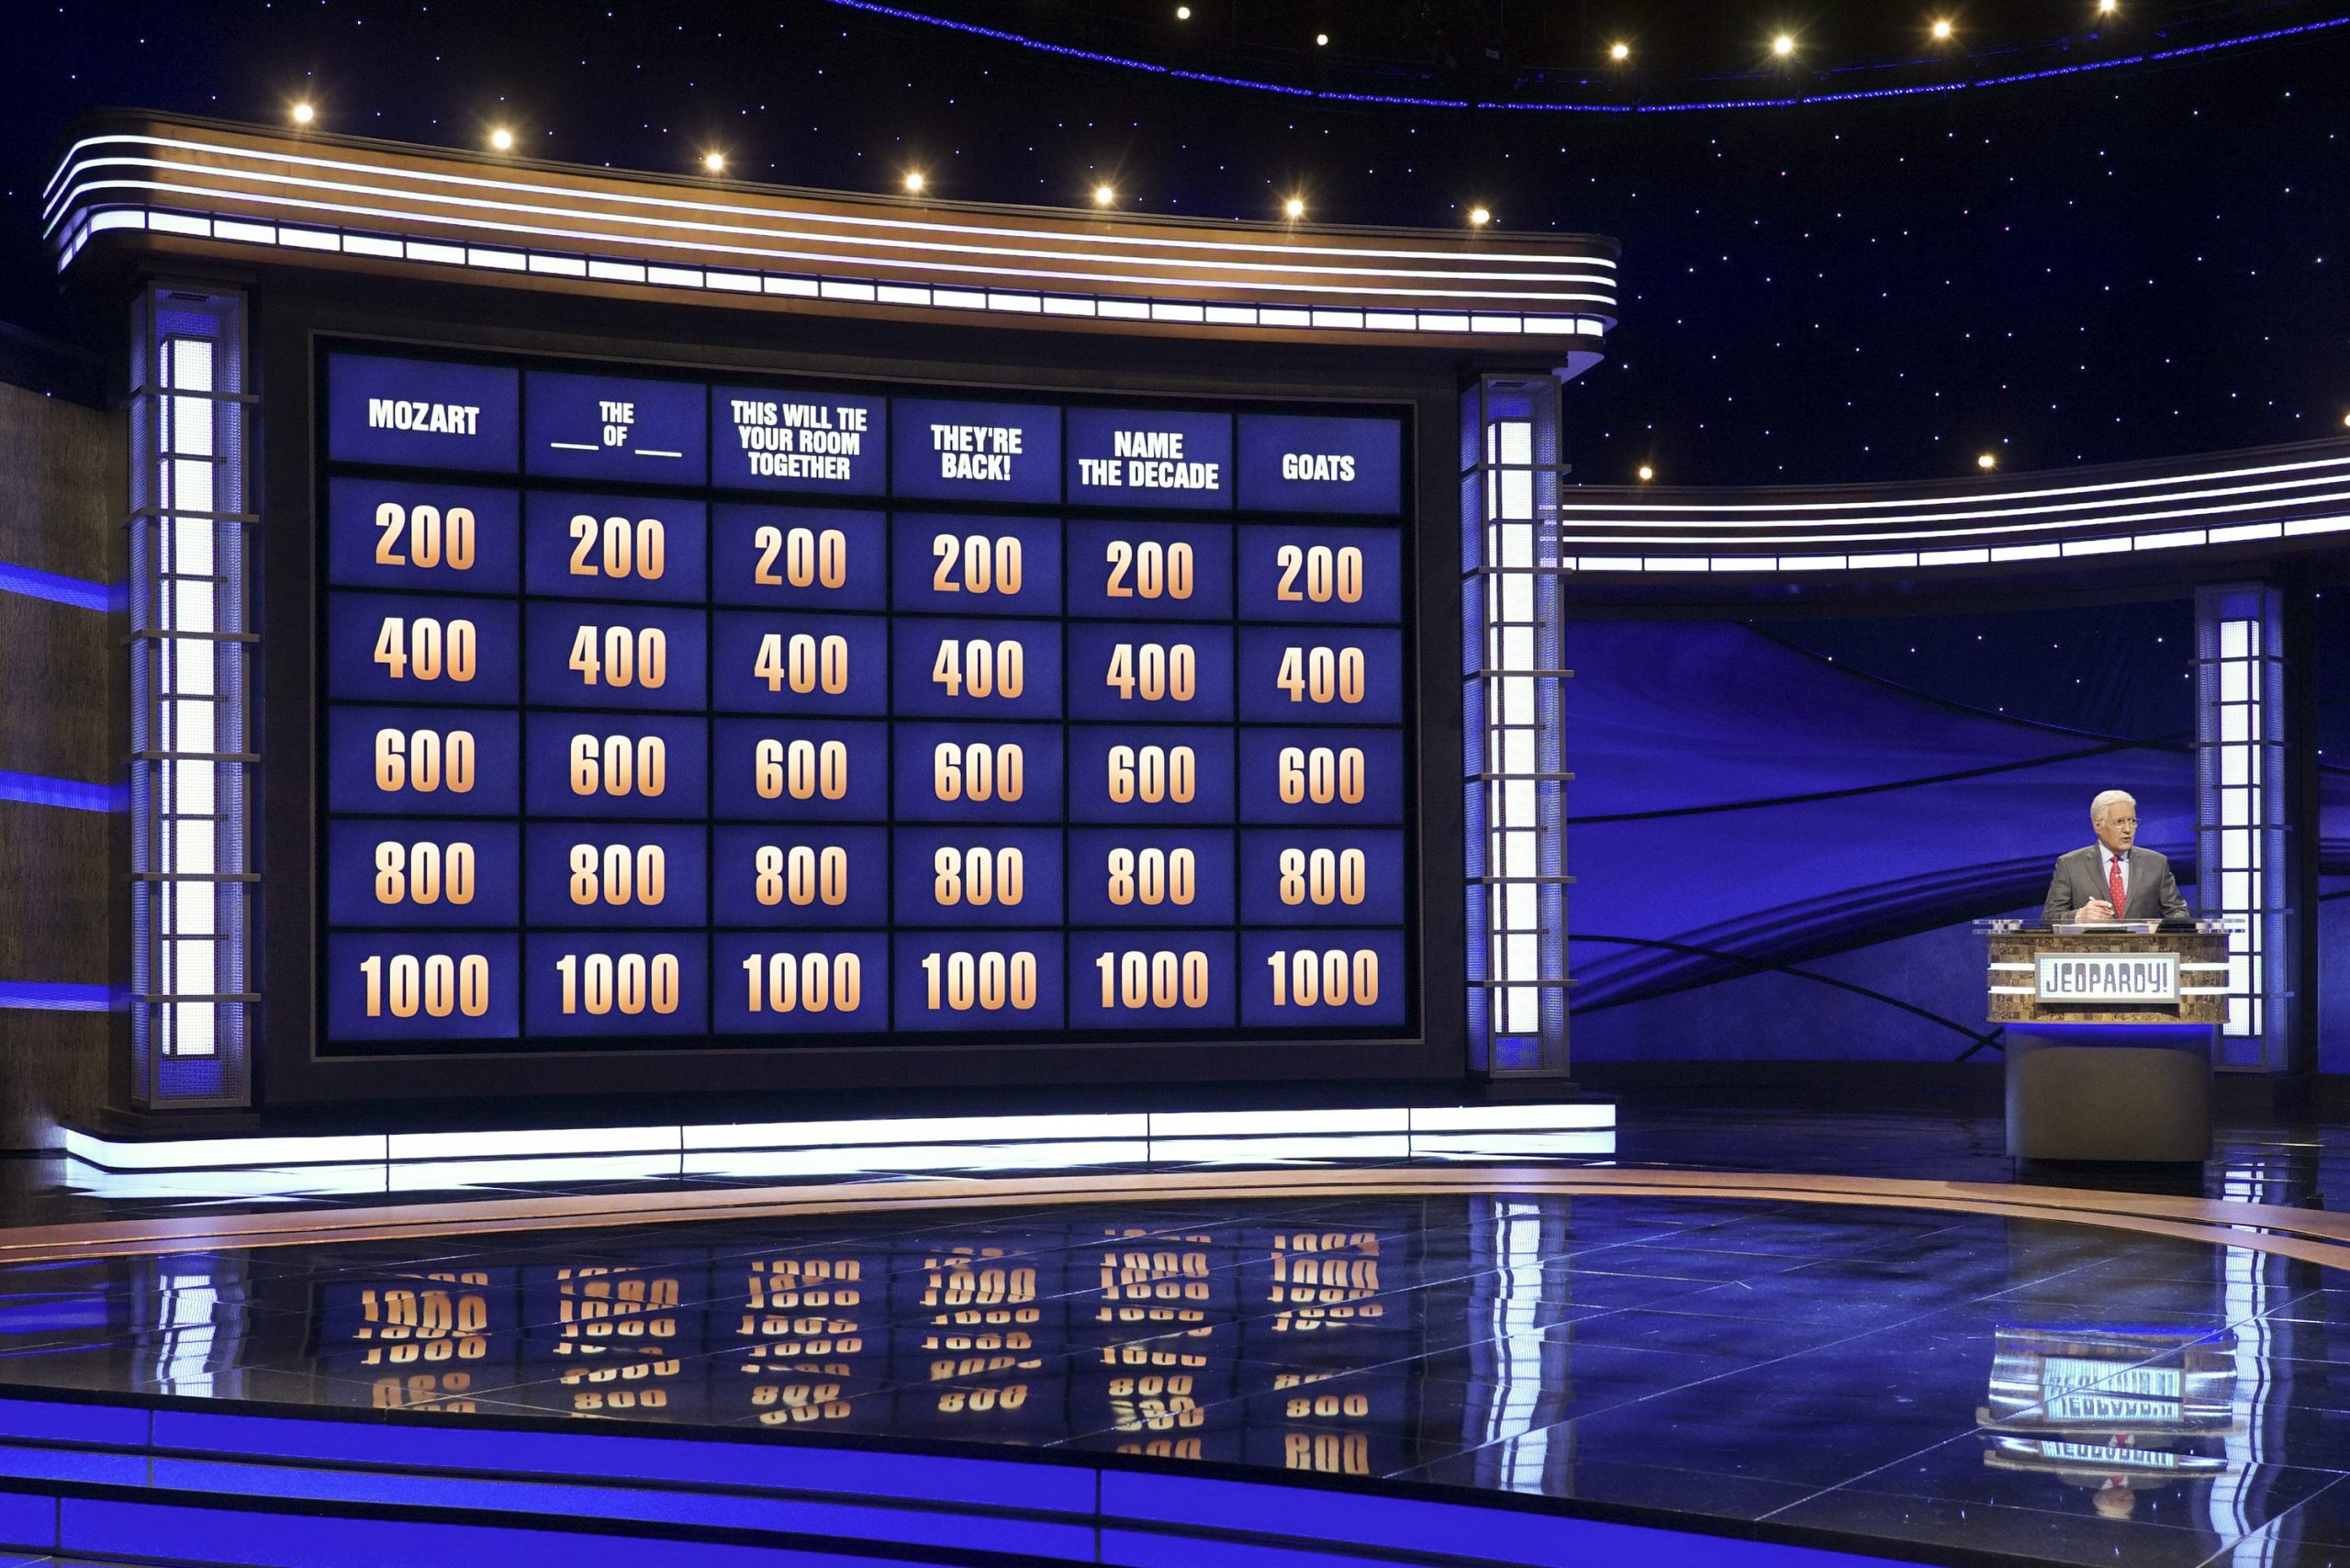 The game board of ABC's 'Jeopardy!'